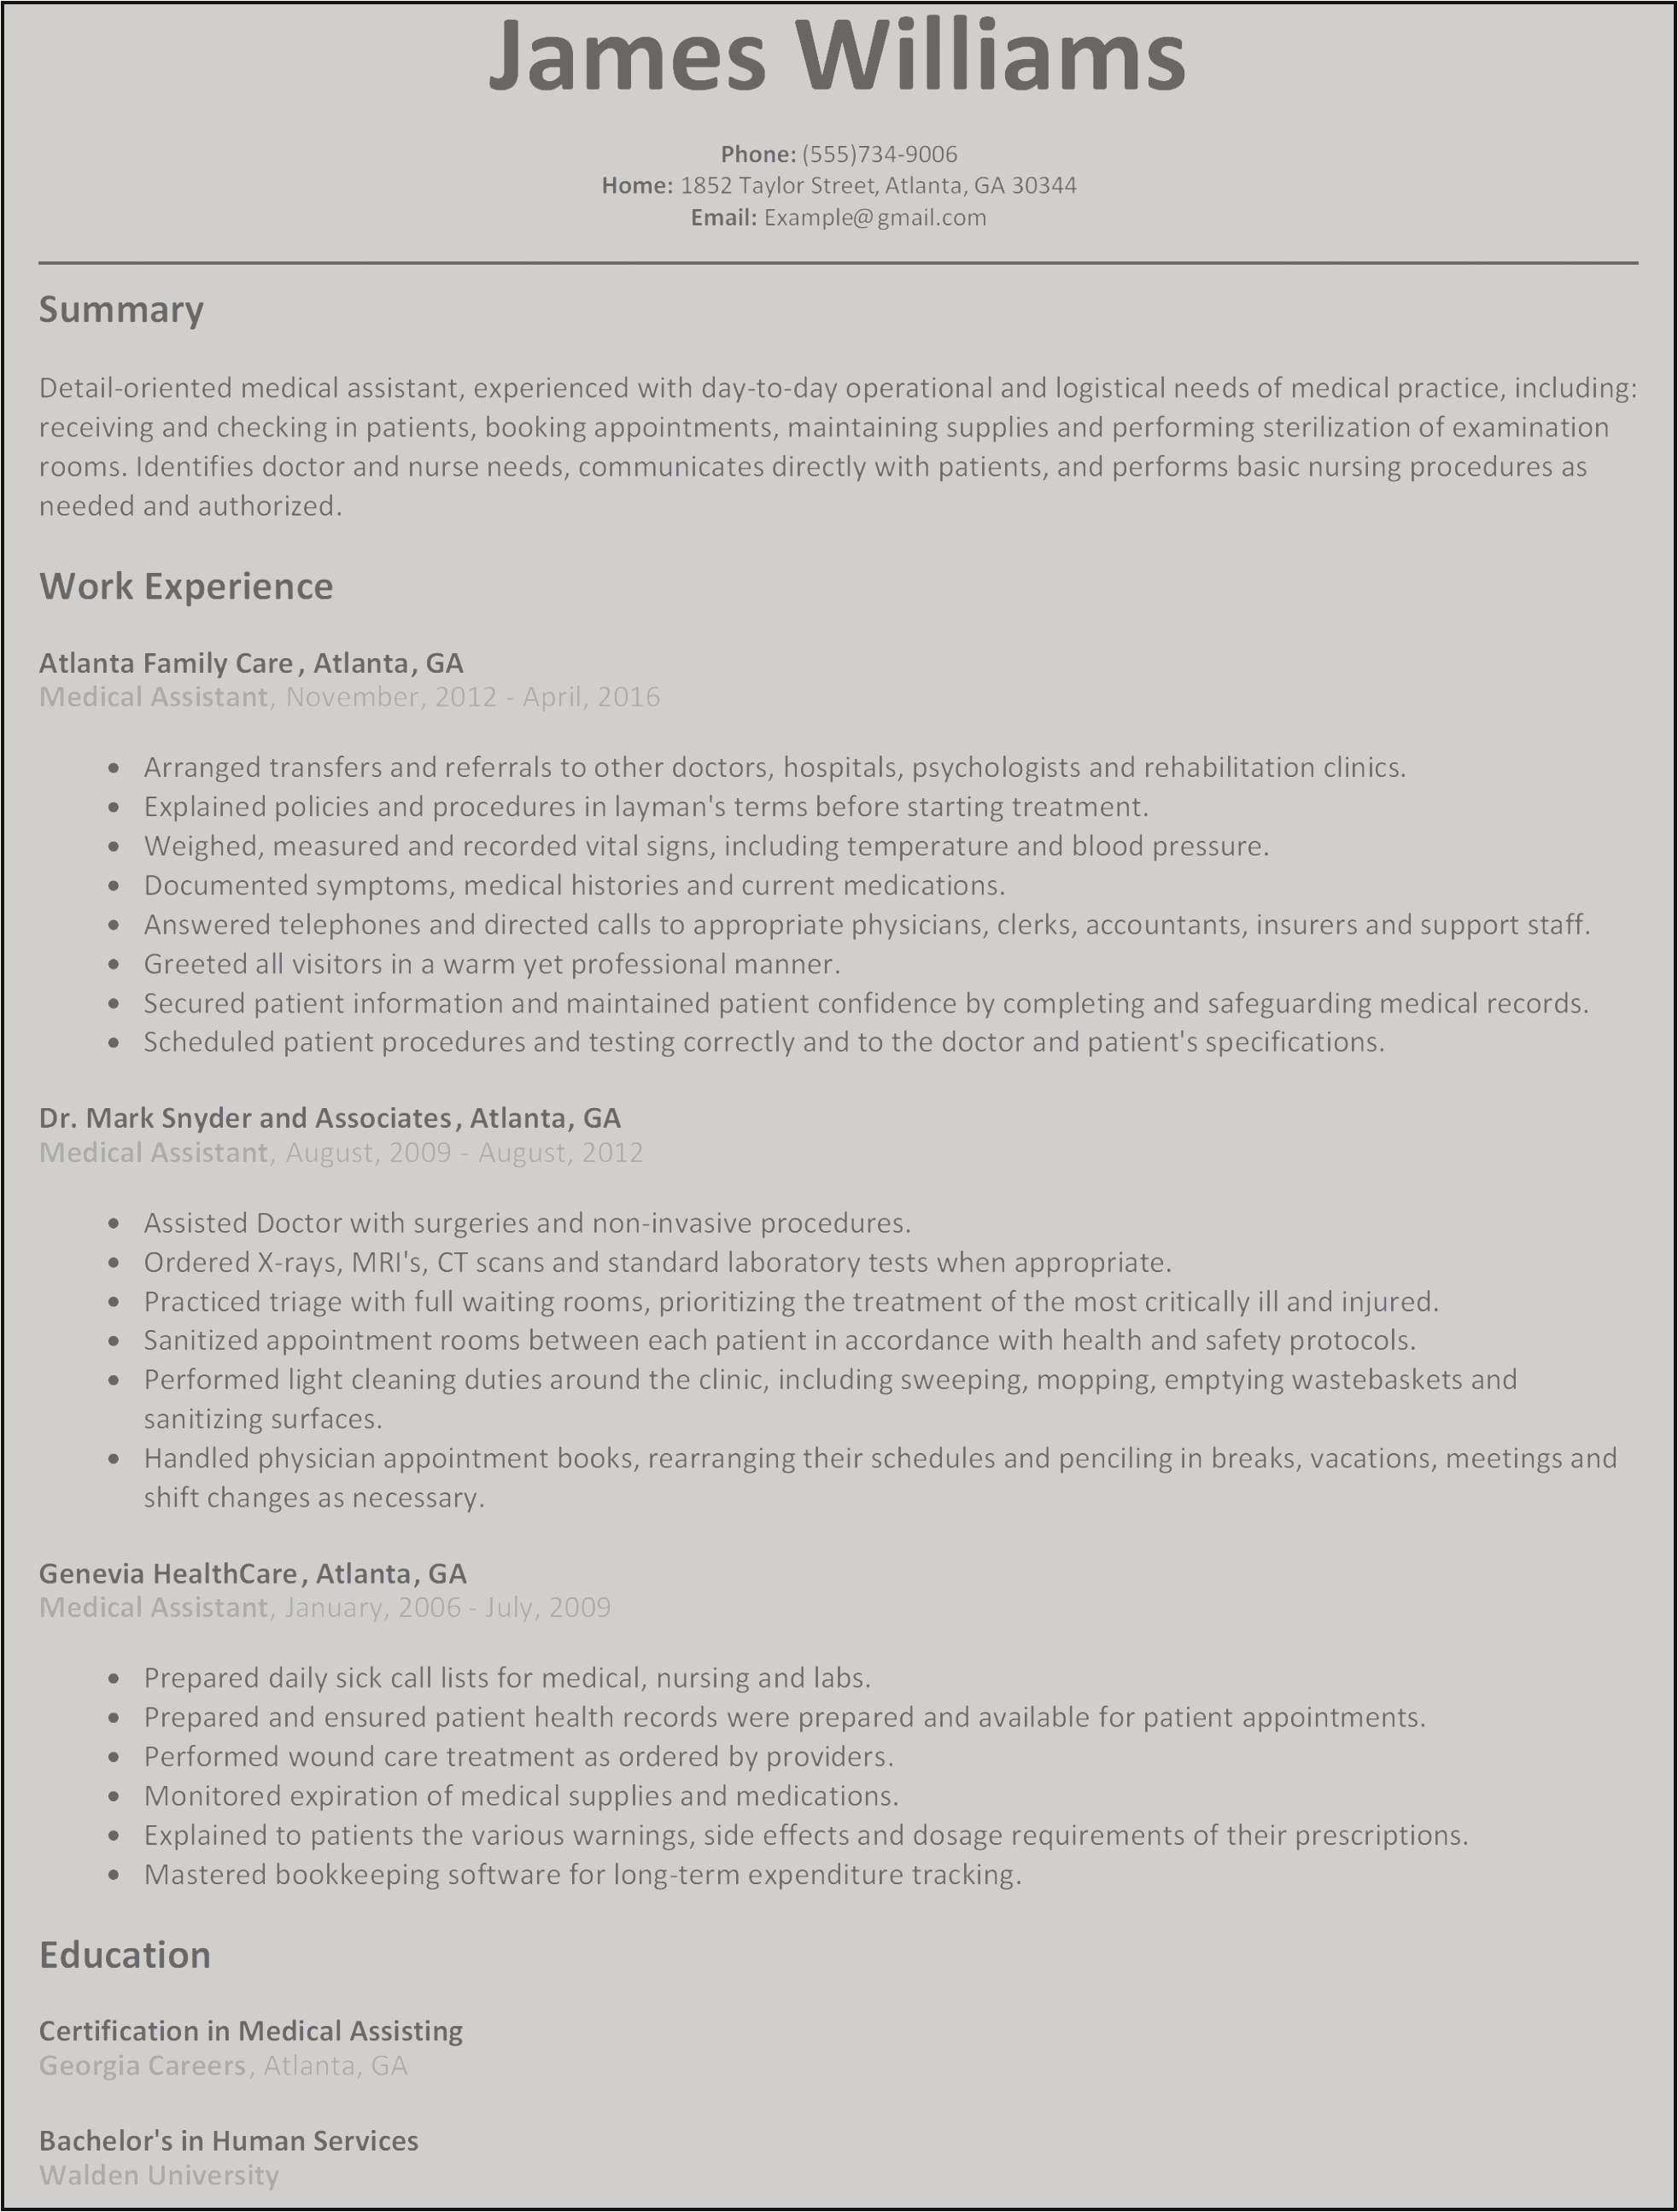 Medical assistant Summary for Resume - 29 New Practice Resume format